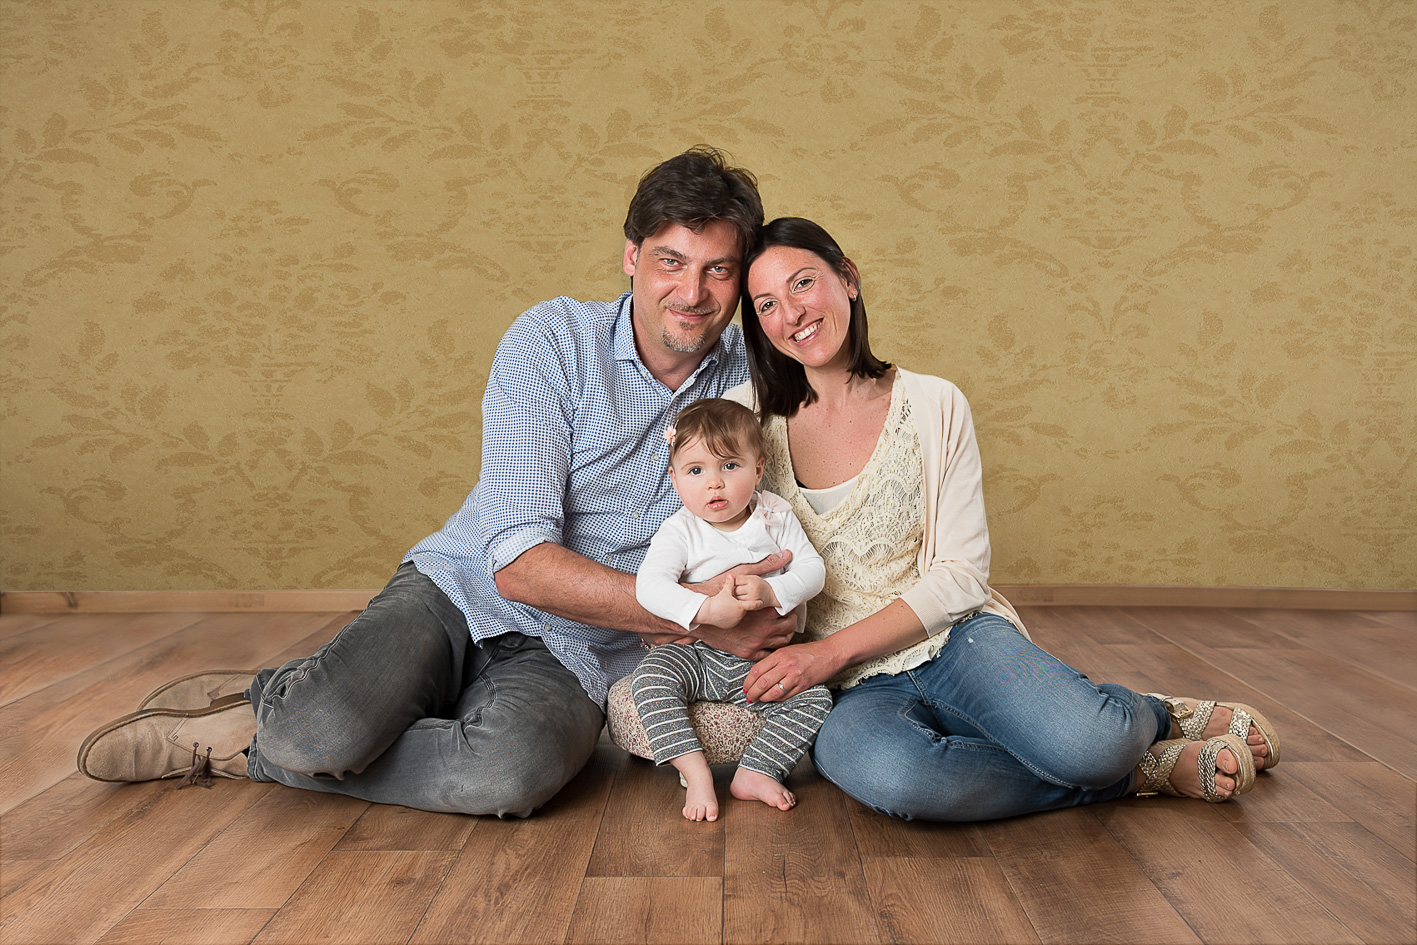 famiglia-photo-tagg-photography-10